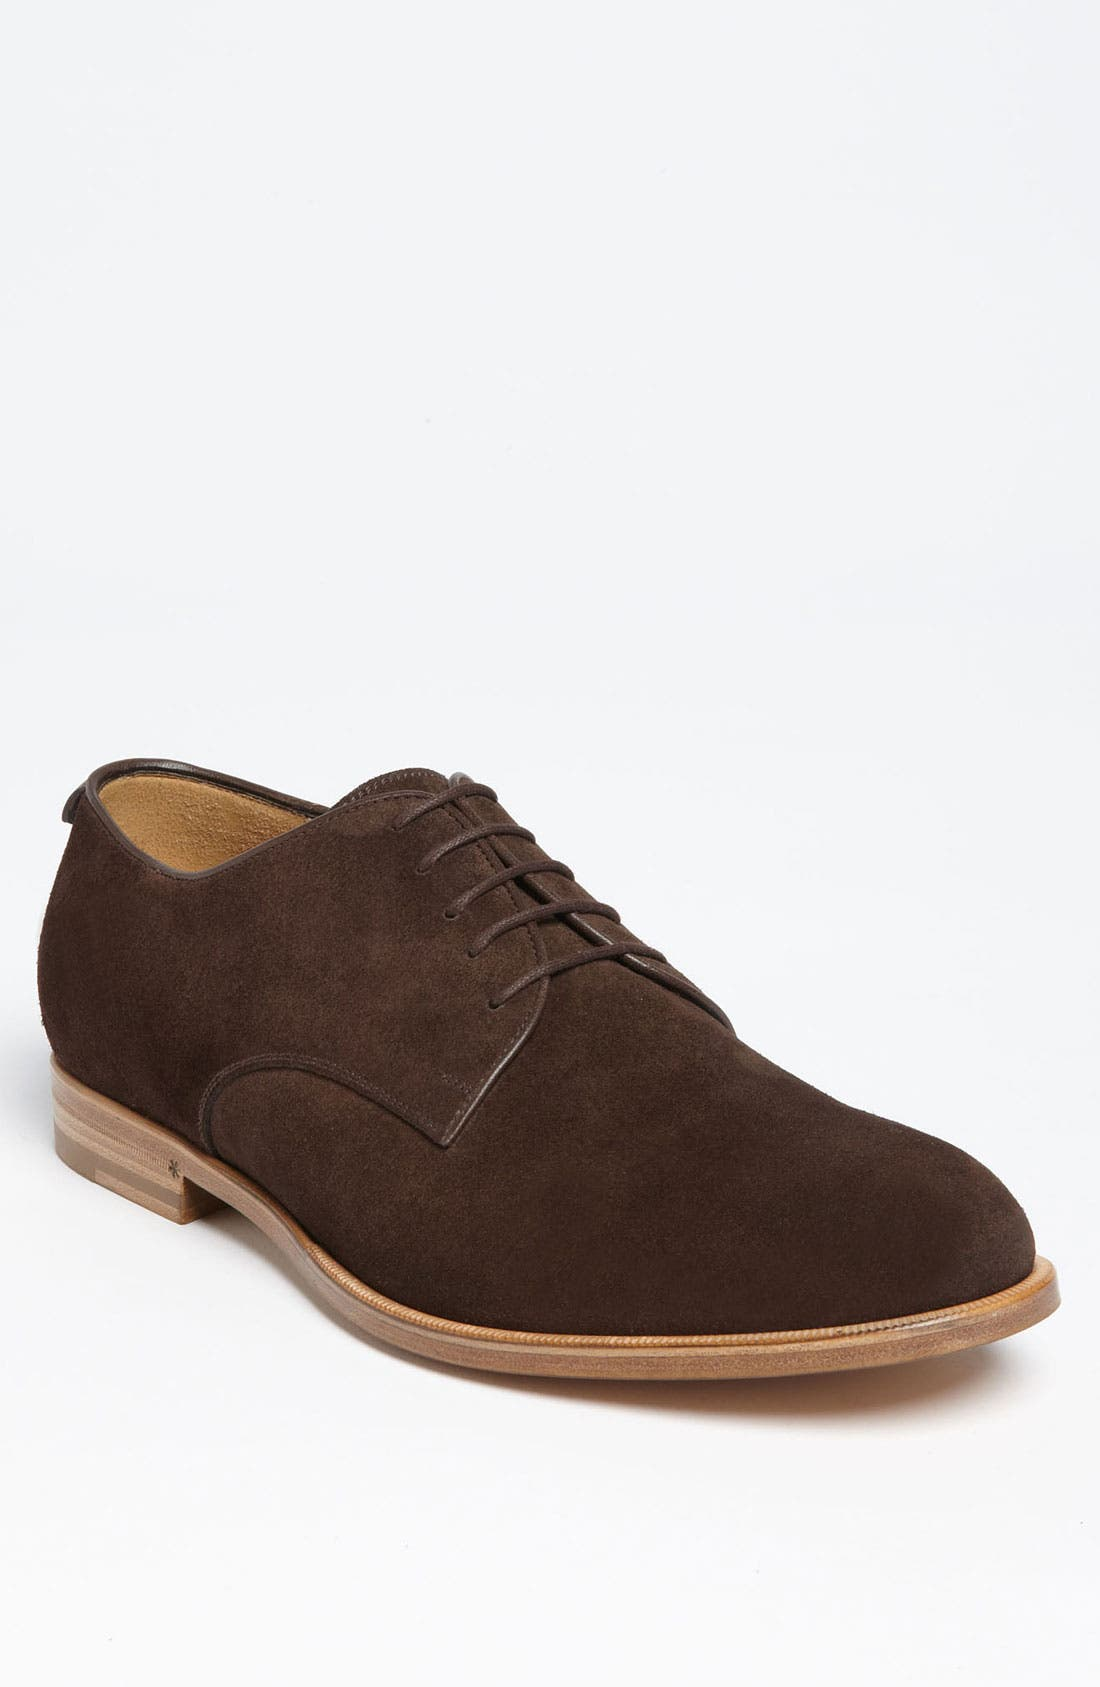 Alternate Image 1 Selected - Gucci 'Clerck' Buck Shoe